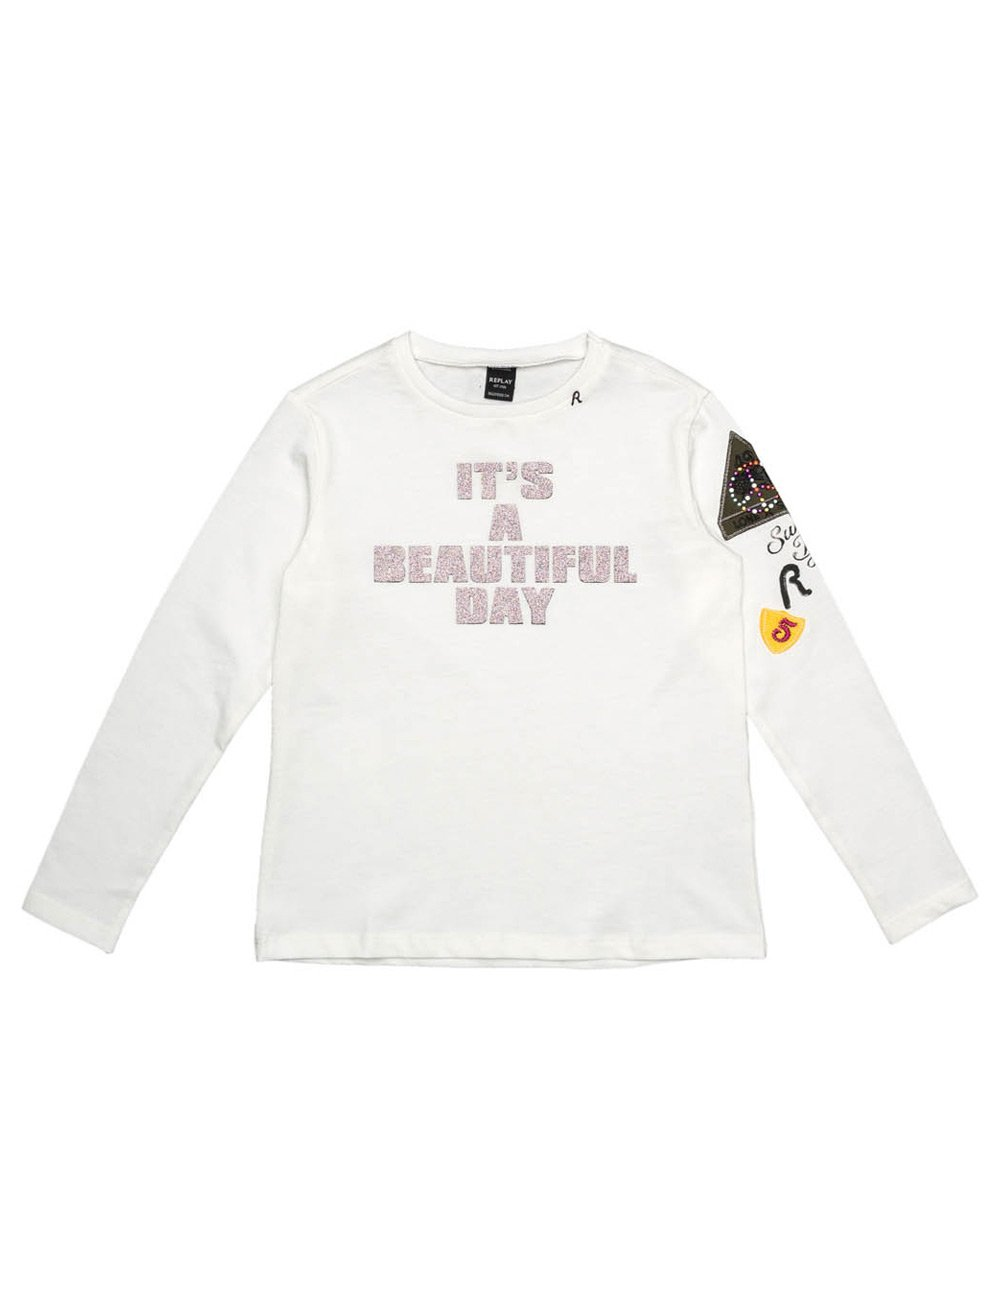 Replay Girls Longsleeved White T-Shirt With Prints in Size 14 Years White